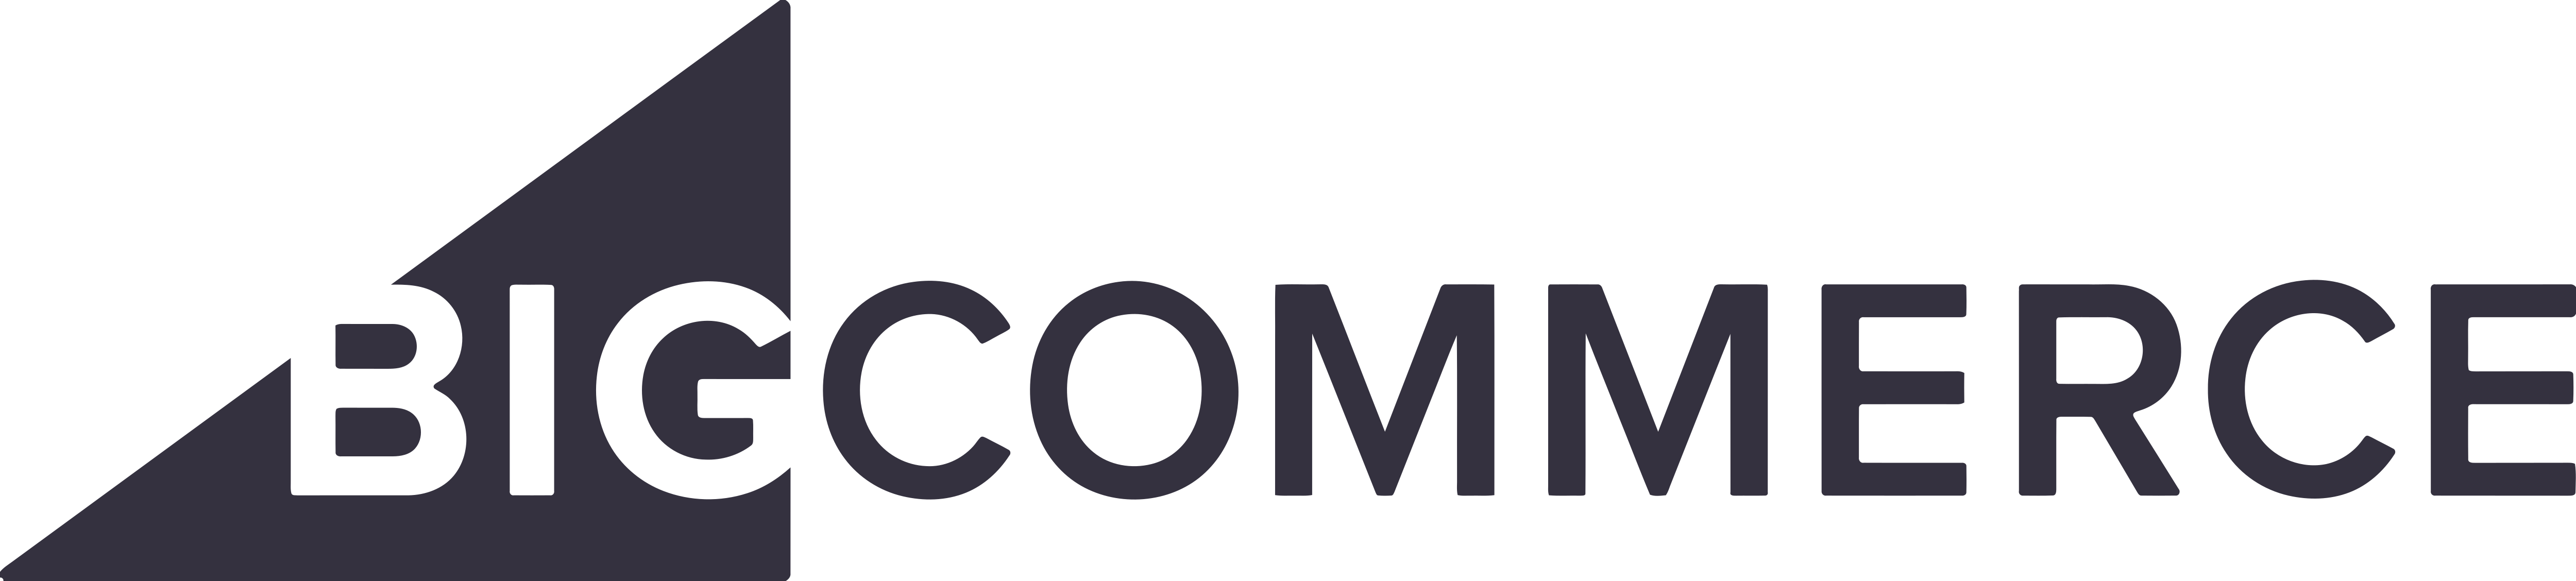 BigCommerce is partnered with RSL